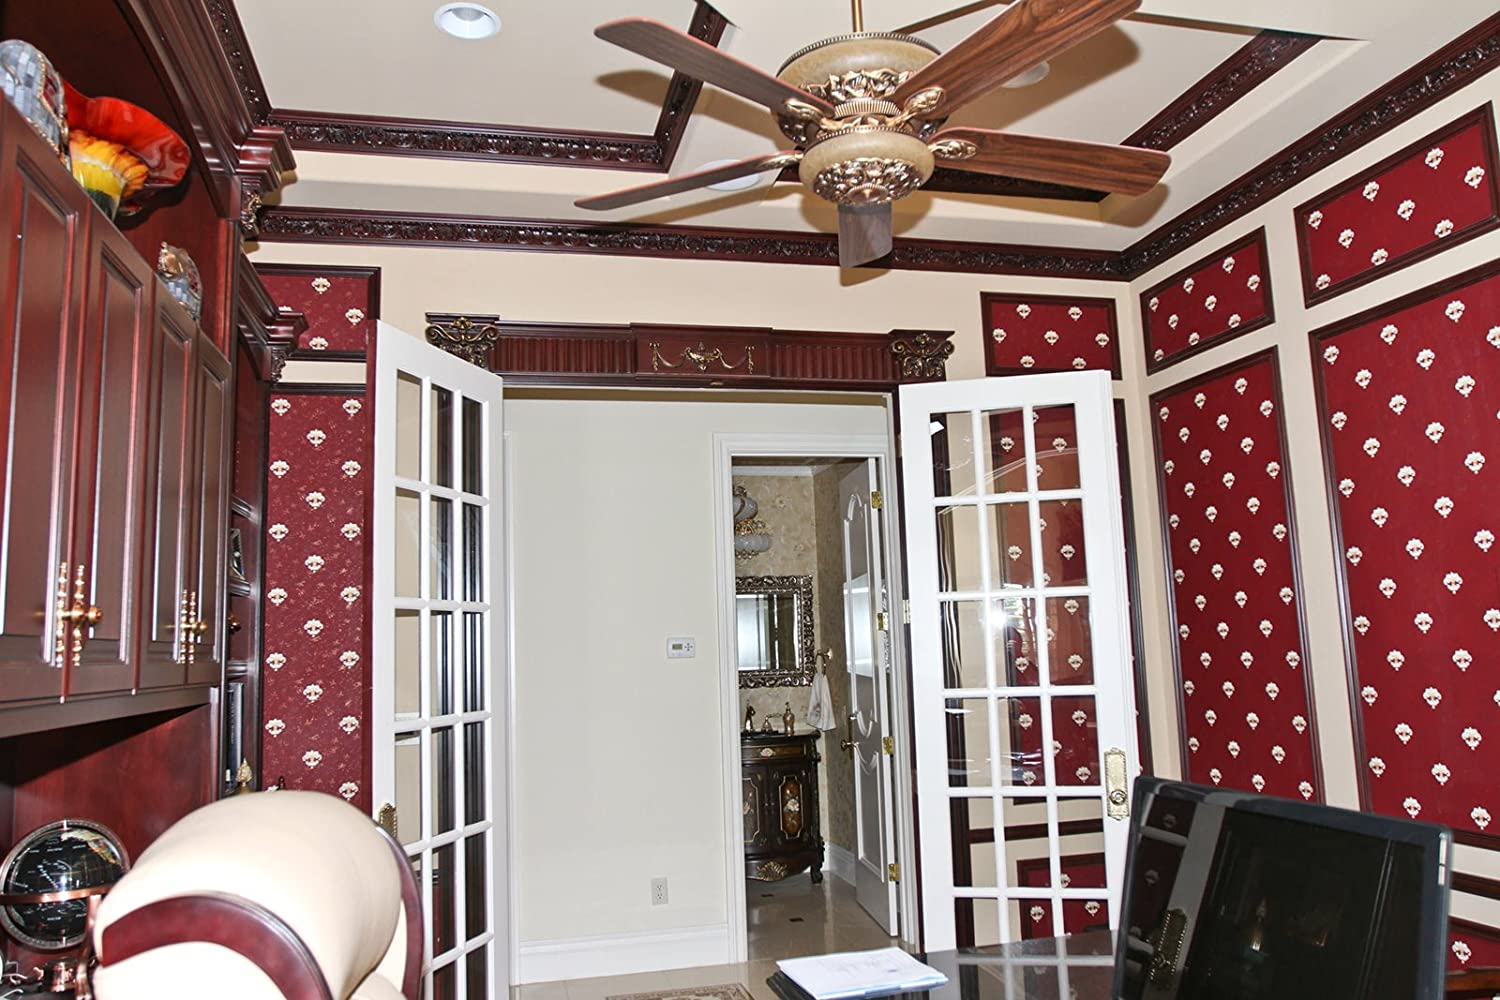 Plastic Crown Moulding Manufactured with a Dense Architectural Polyurethane Compound 10 Crown Molding CM-2080 Crown Molding.